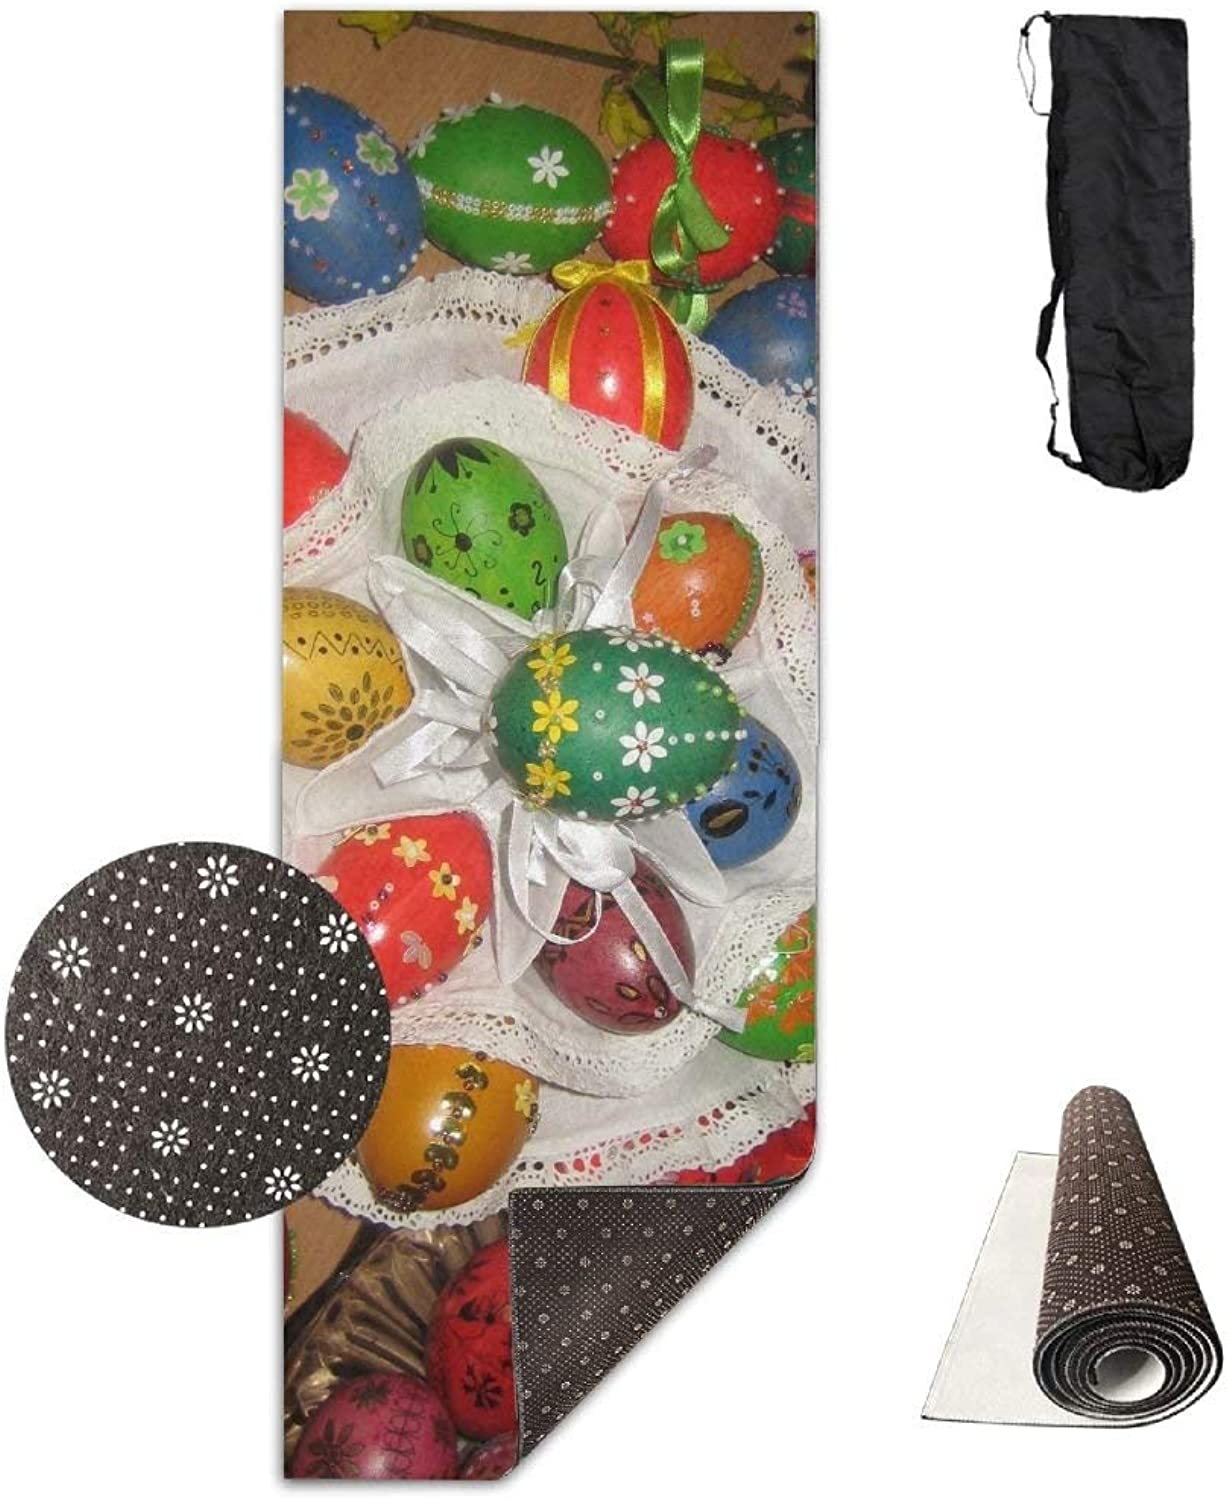 Pascha Eggs Dyed Napkins Table Holiday ECO Aqua Power Kinematic Iyengar Kundini Hot Pilates Gymnastics Hatha Yoga Mat and Other Mats That Need to Be Performed On The Ground